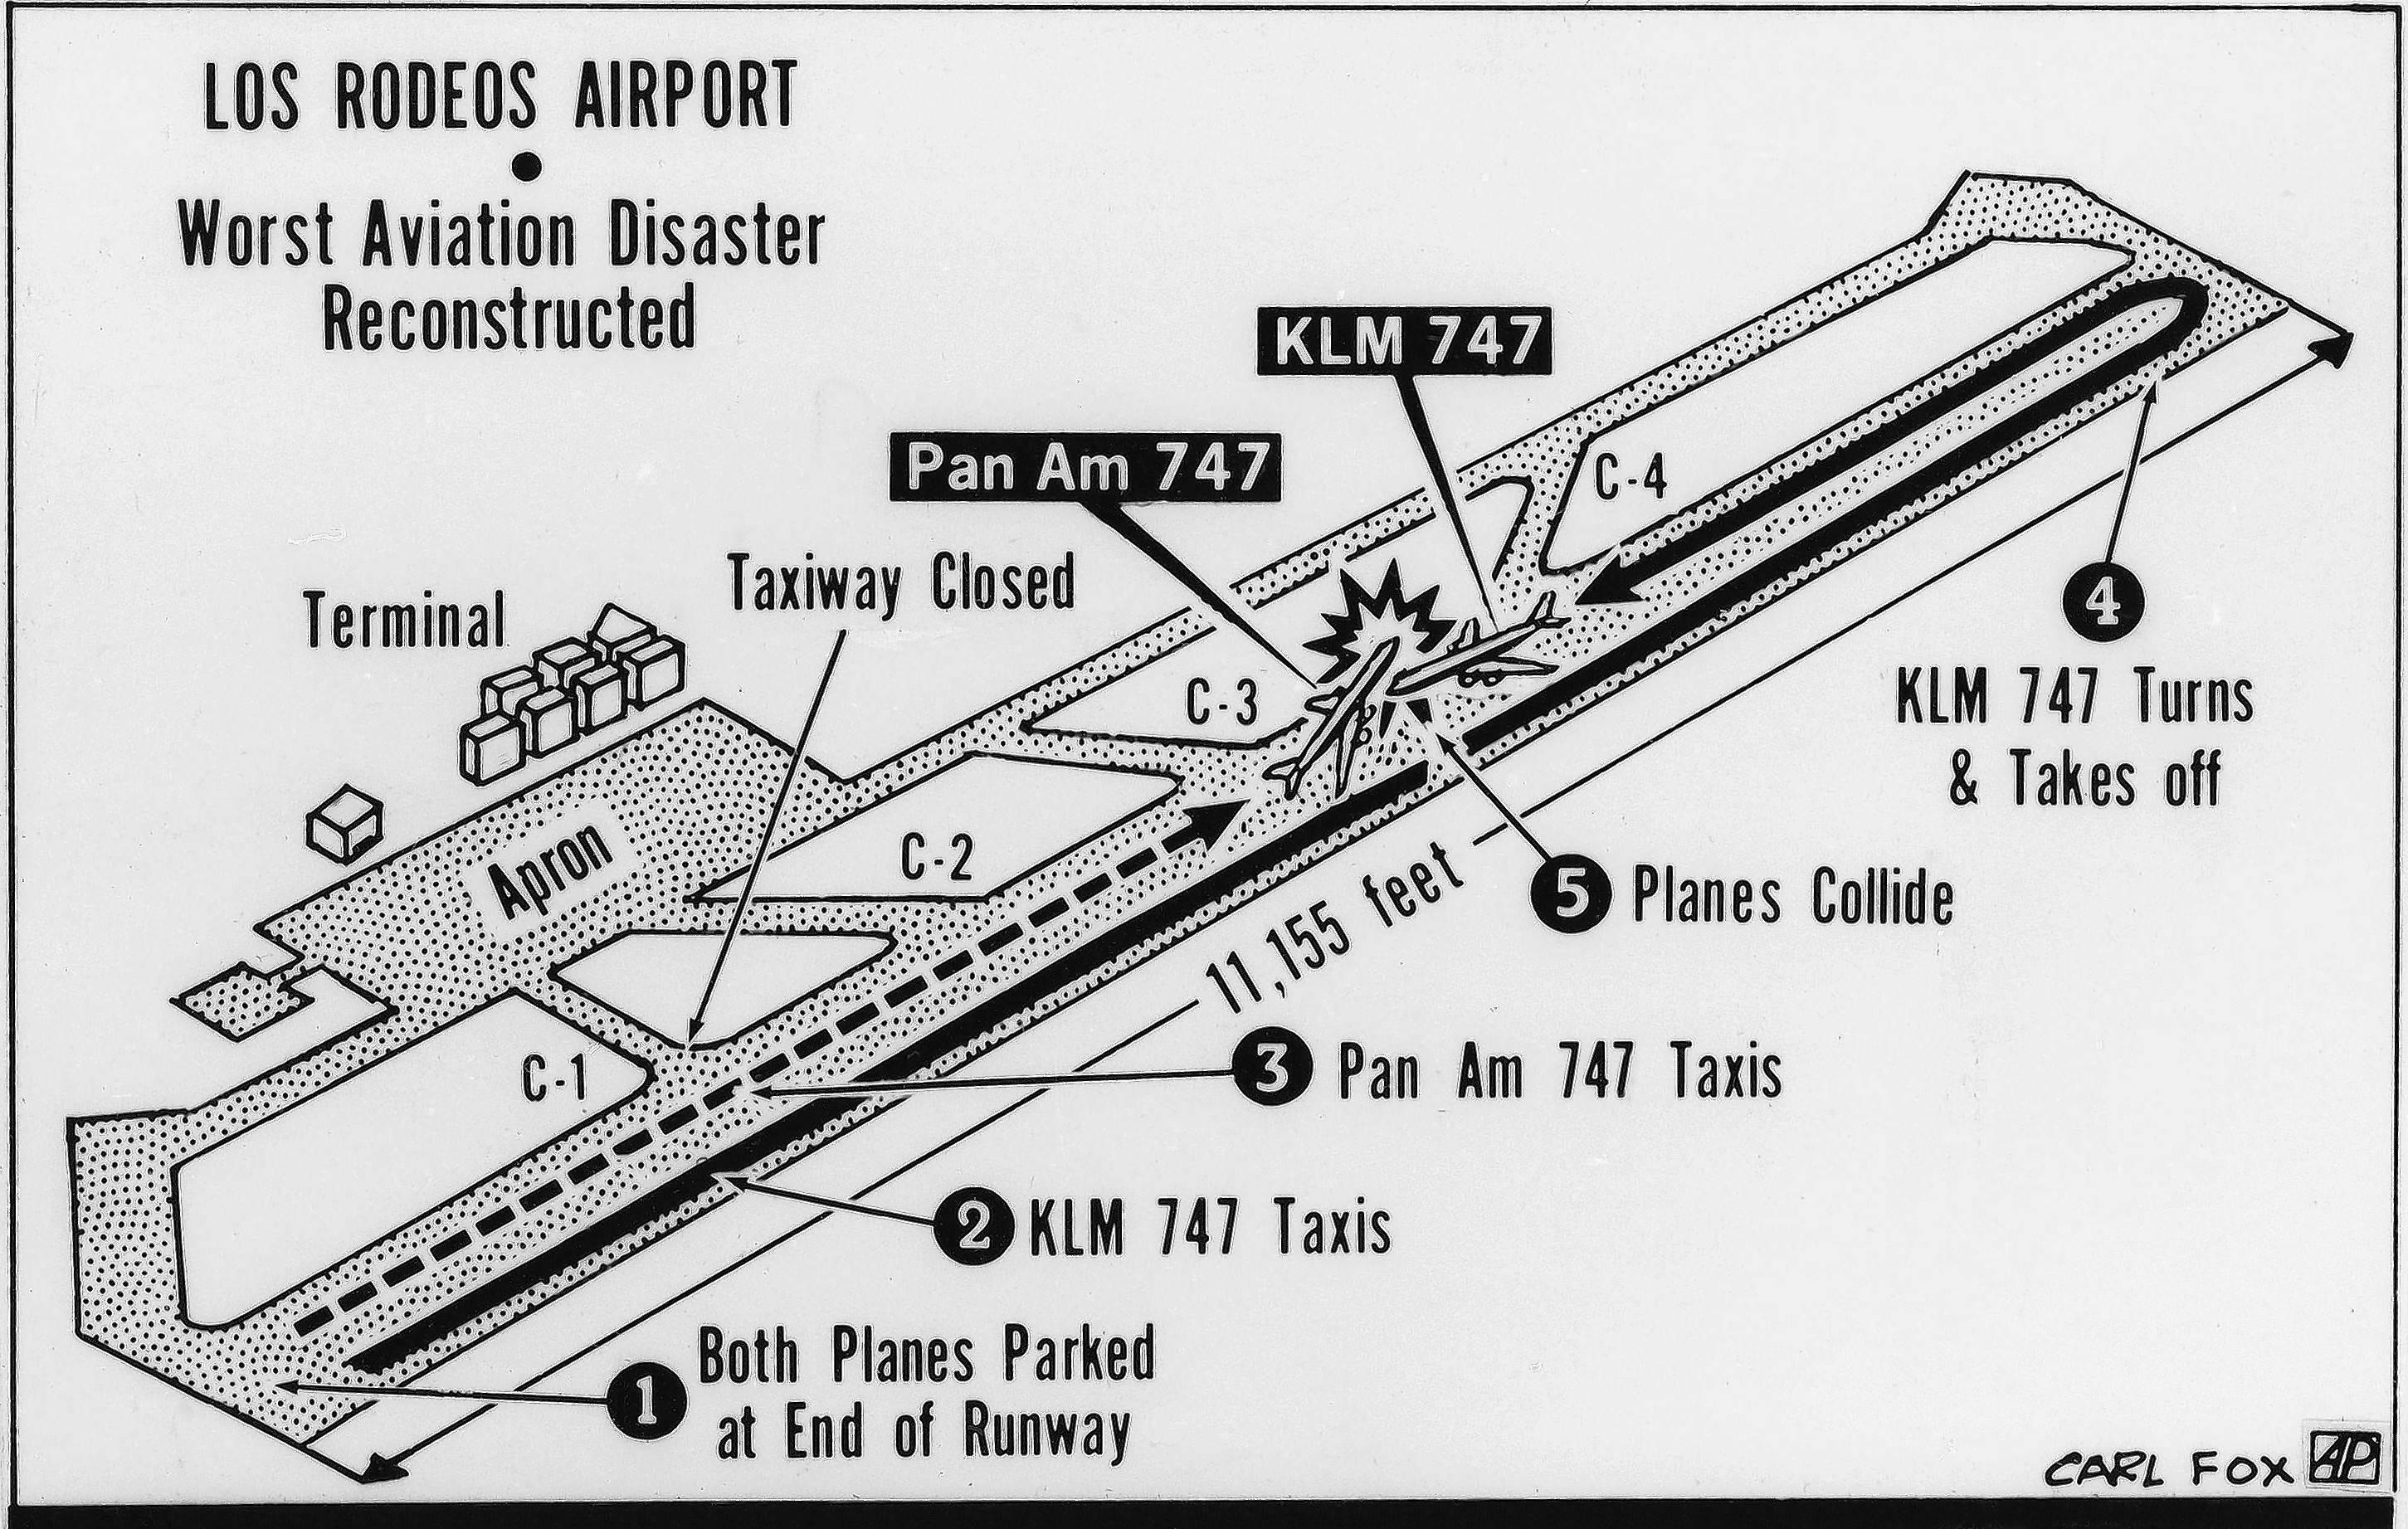 This graphic reconstructs the 1977 collision of a Pan American 747 jumbo jet and a KLM 747 jumbo jet at the Los Rodeos Airport in Santa Cruz de Tenerife, Canary Islands. The solid line follows the path of the KLM jet and the dotted line follows the path of the Pan Am jet.